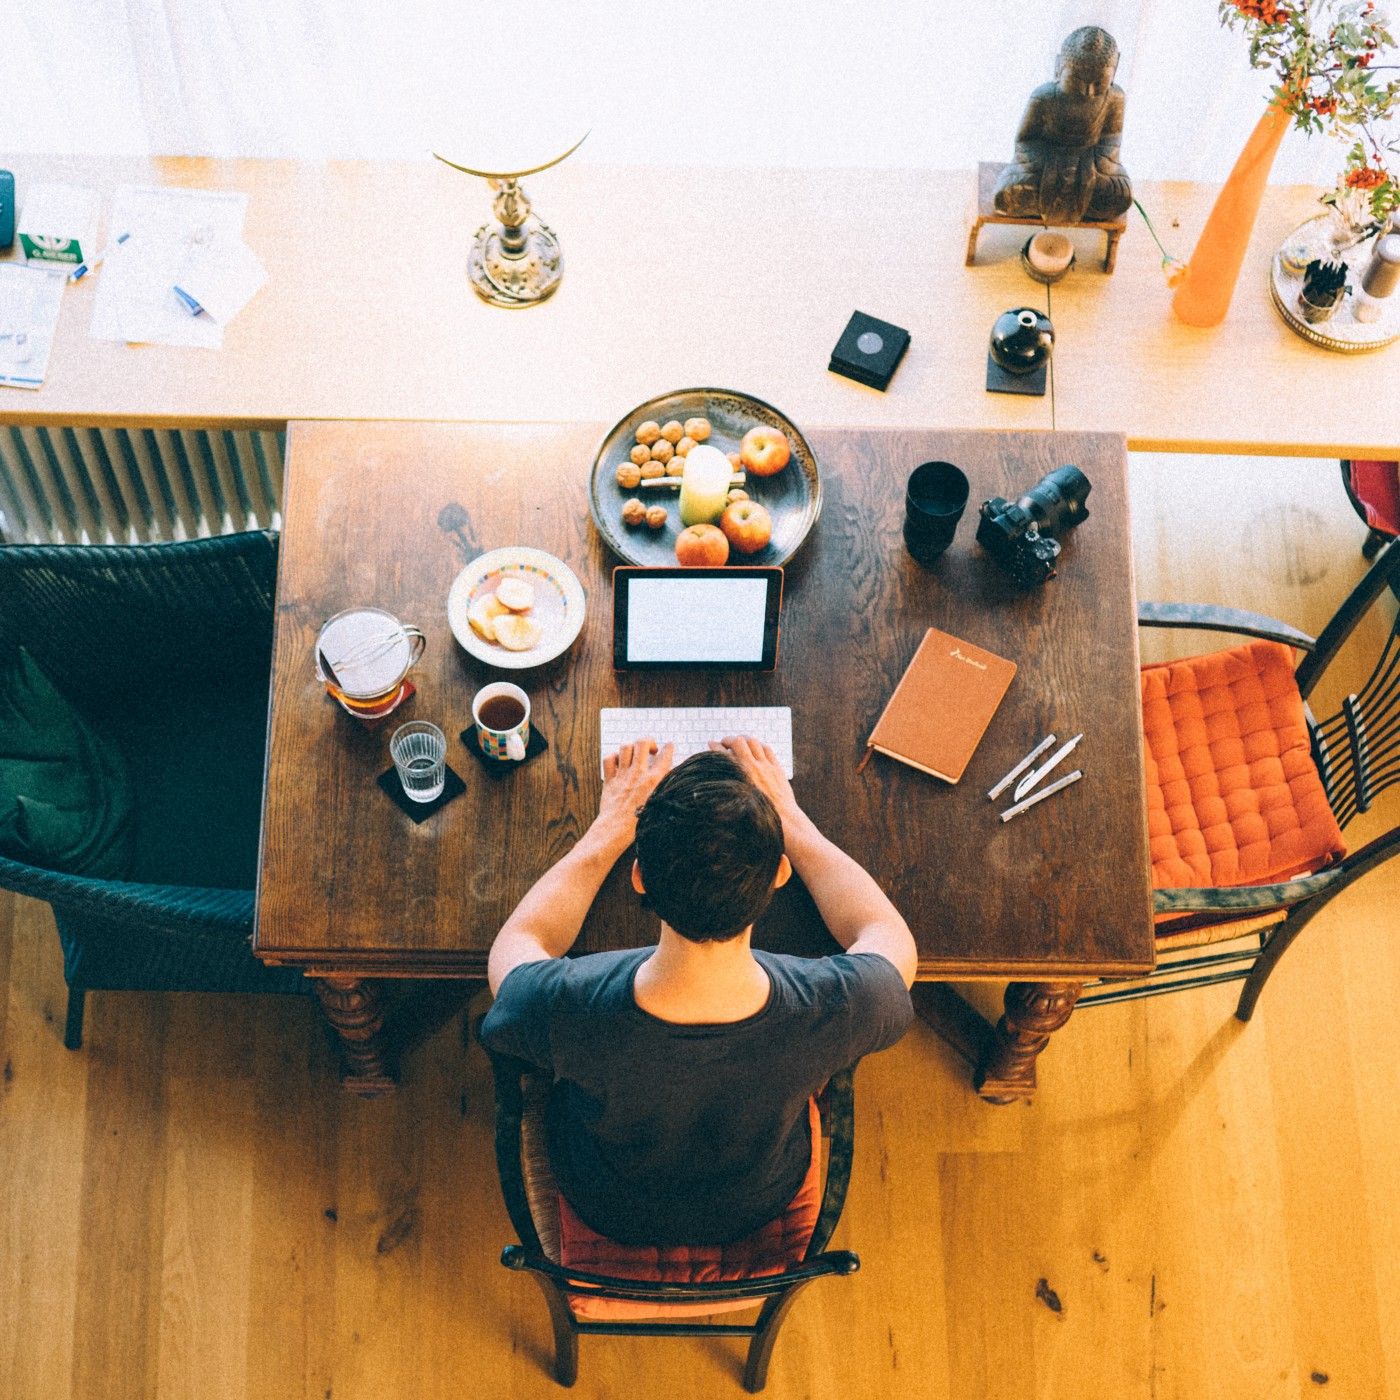 Man types on an iPad on his desk while surrounded by food.